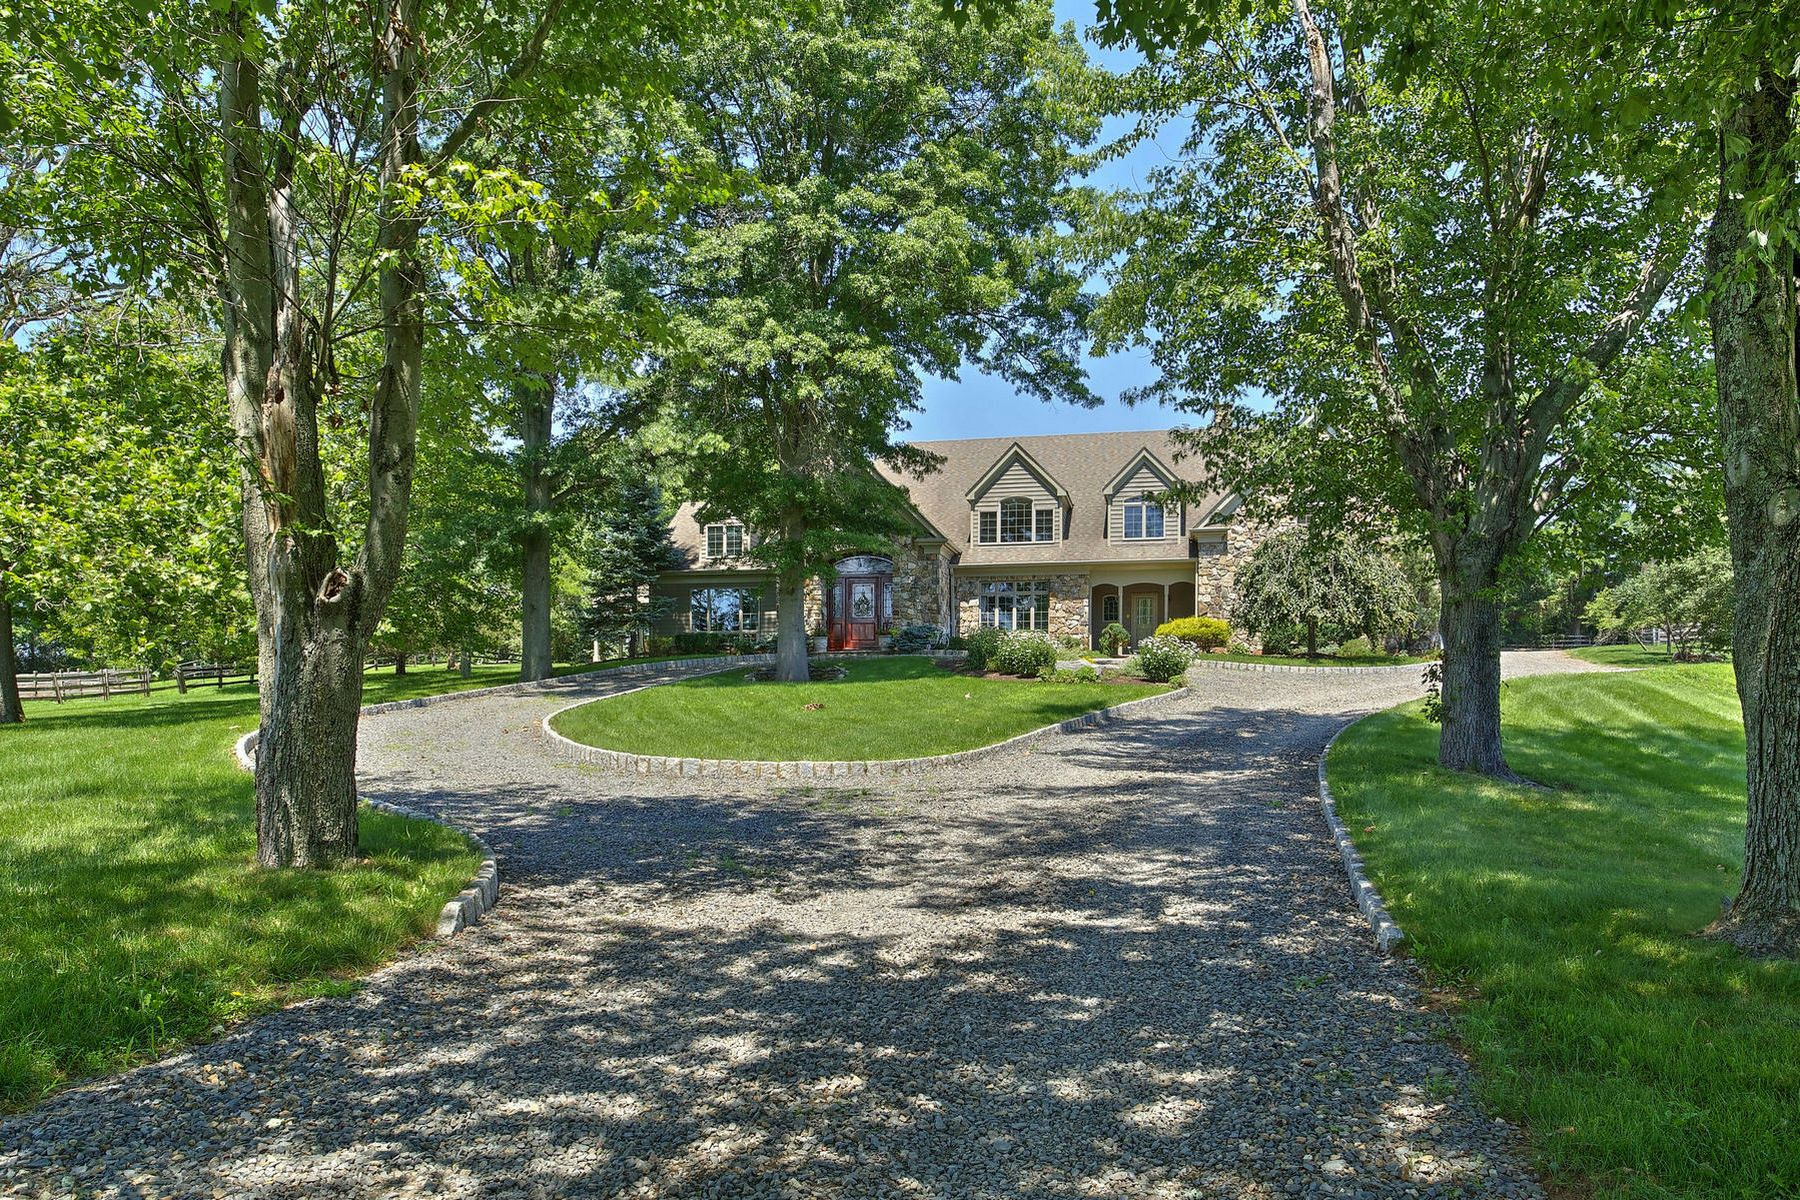 Single Family Home for Sale at French Country Equestrian 2105 Lamington Road Bedminster, New Jersey 07921 United States